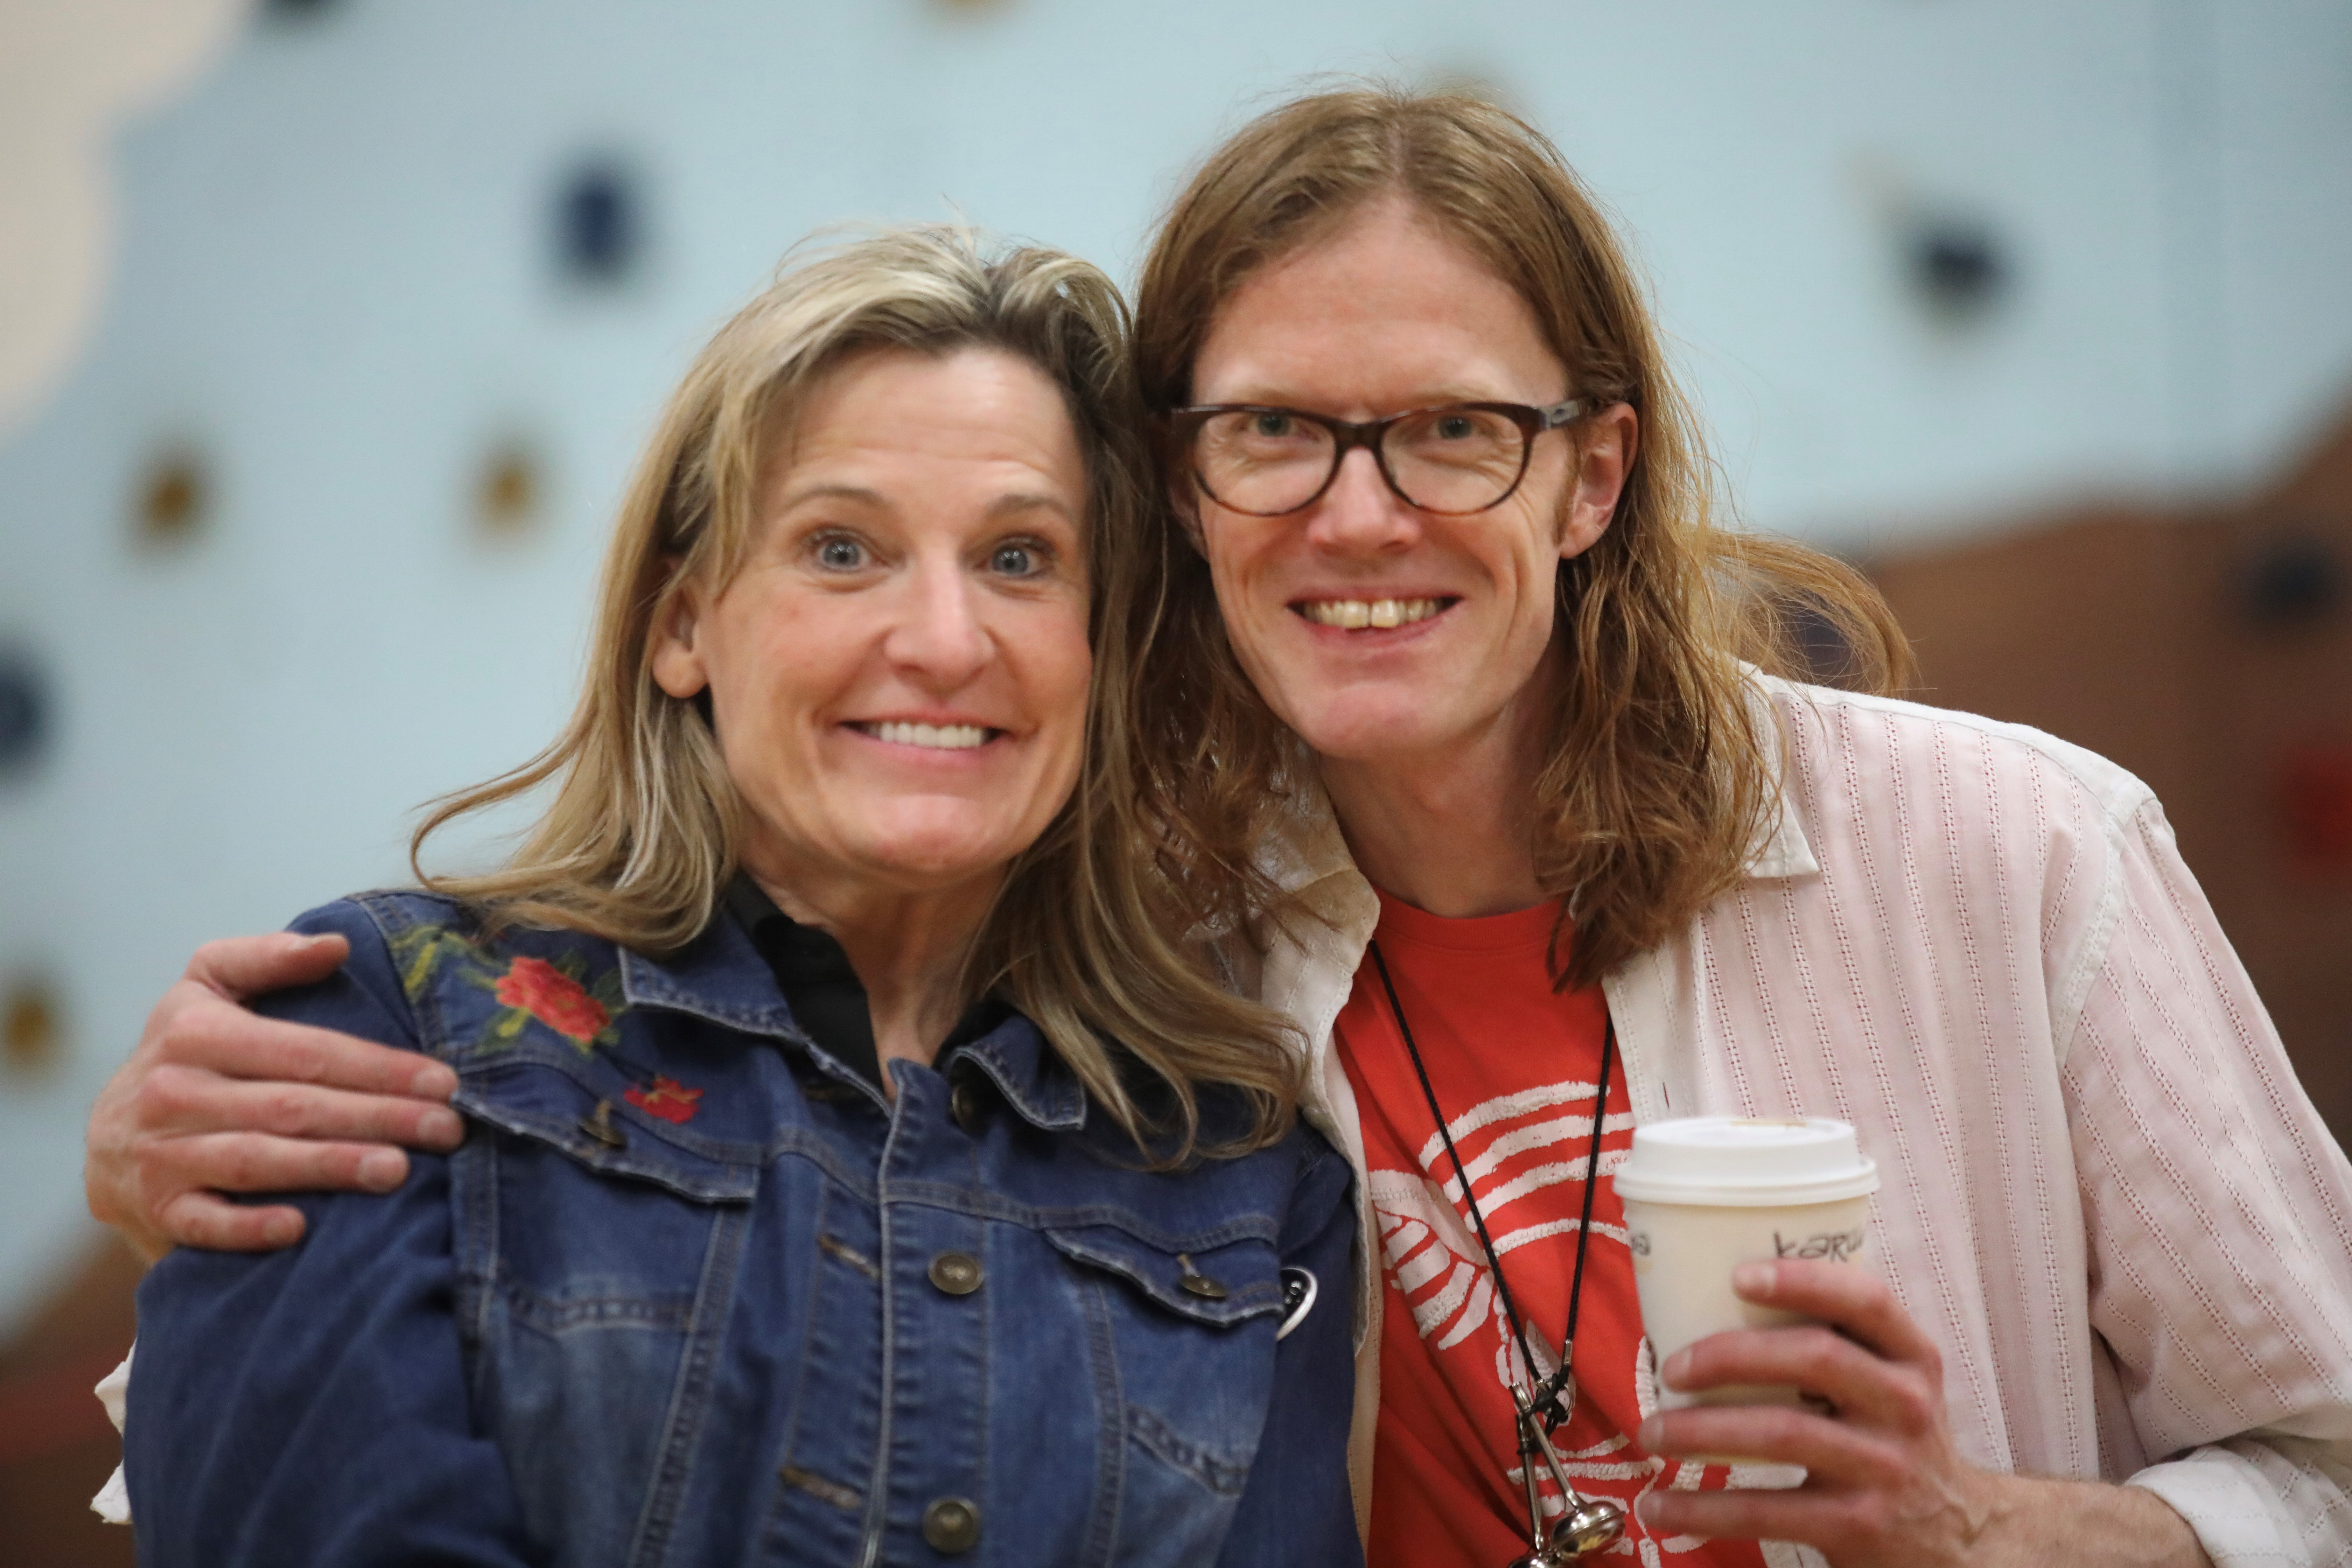 Jennifer Staley of the Sheldon Theatre and Kenneth just before the Sunnyside Elementary Workshop.